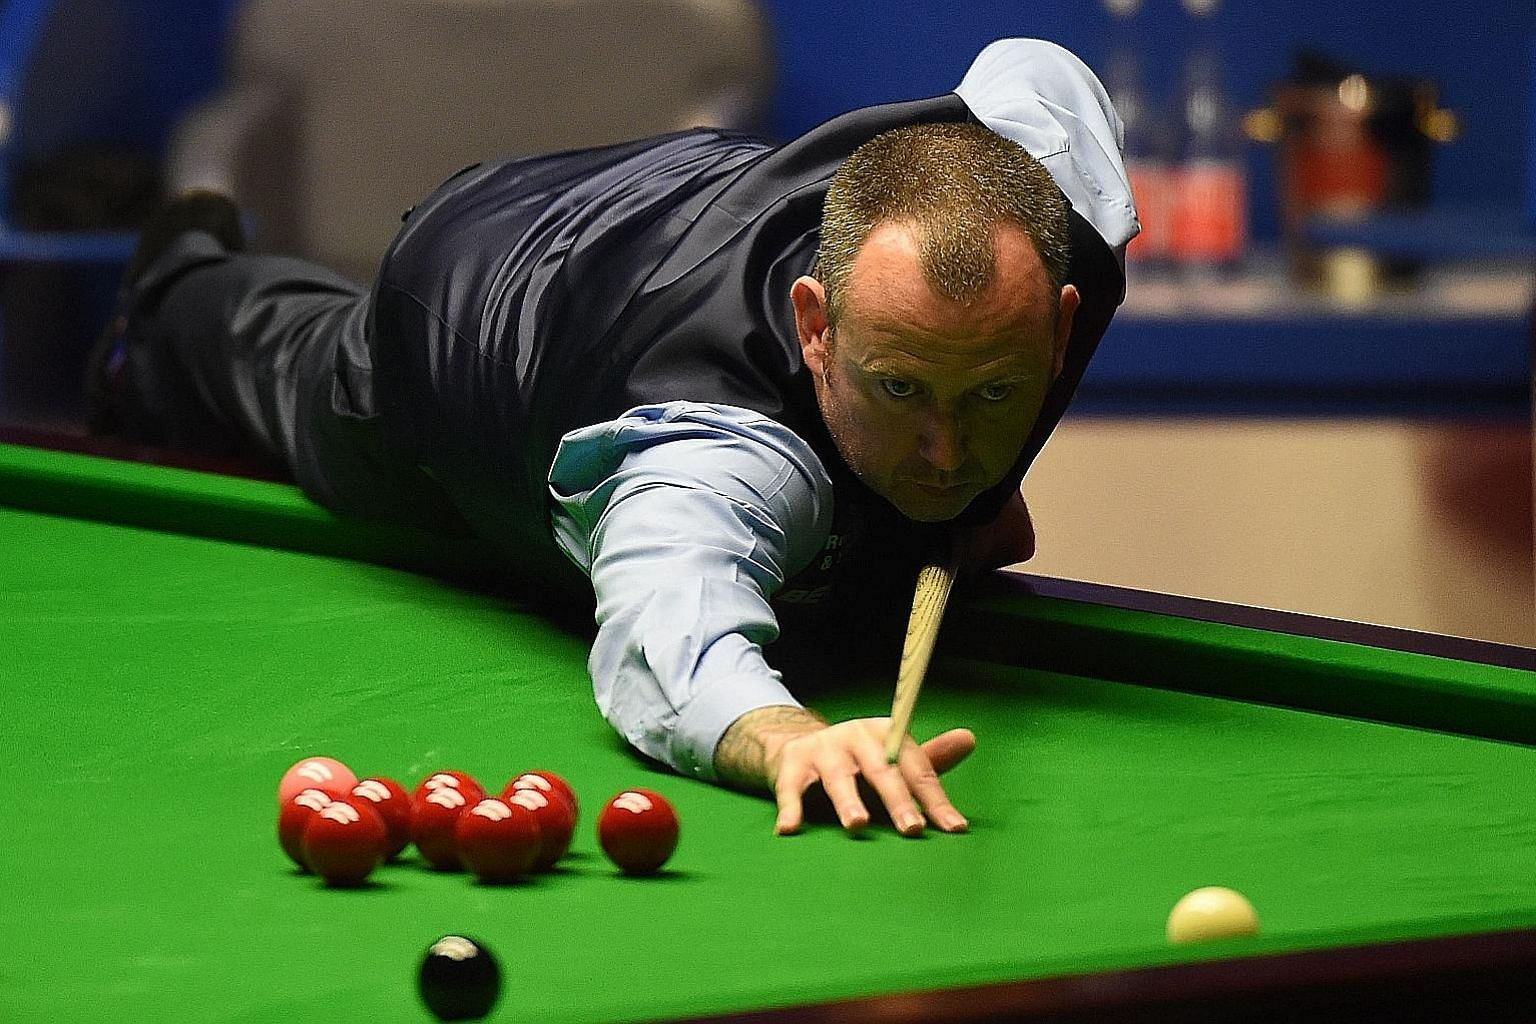 From top: Welshman Mark Williams attending his press conference naked after winning his third world title. Mark Williams playing a shot against Scotland's John Higgins during the World Championship Snooker final match at The Crucible in Sheffield, En